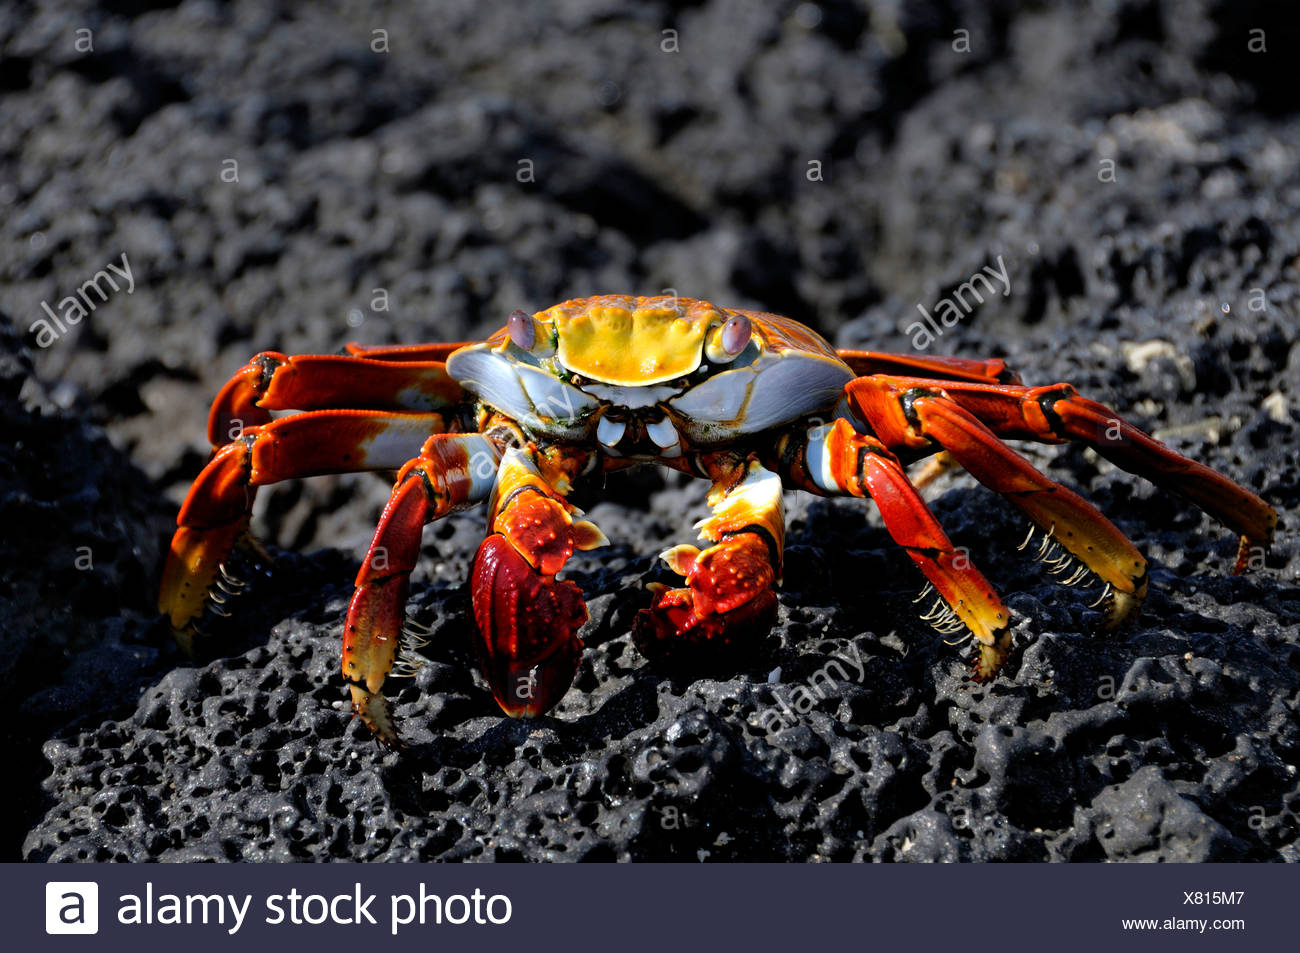 Ecuador Sally Lightfoot Crab Grapsus Grapsus Las Bachas Santa Cruz Island Galapagos Islands black rock - Stock Image